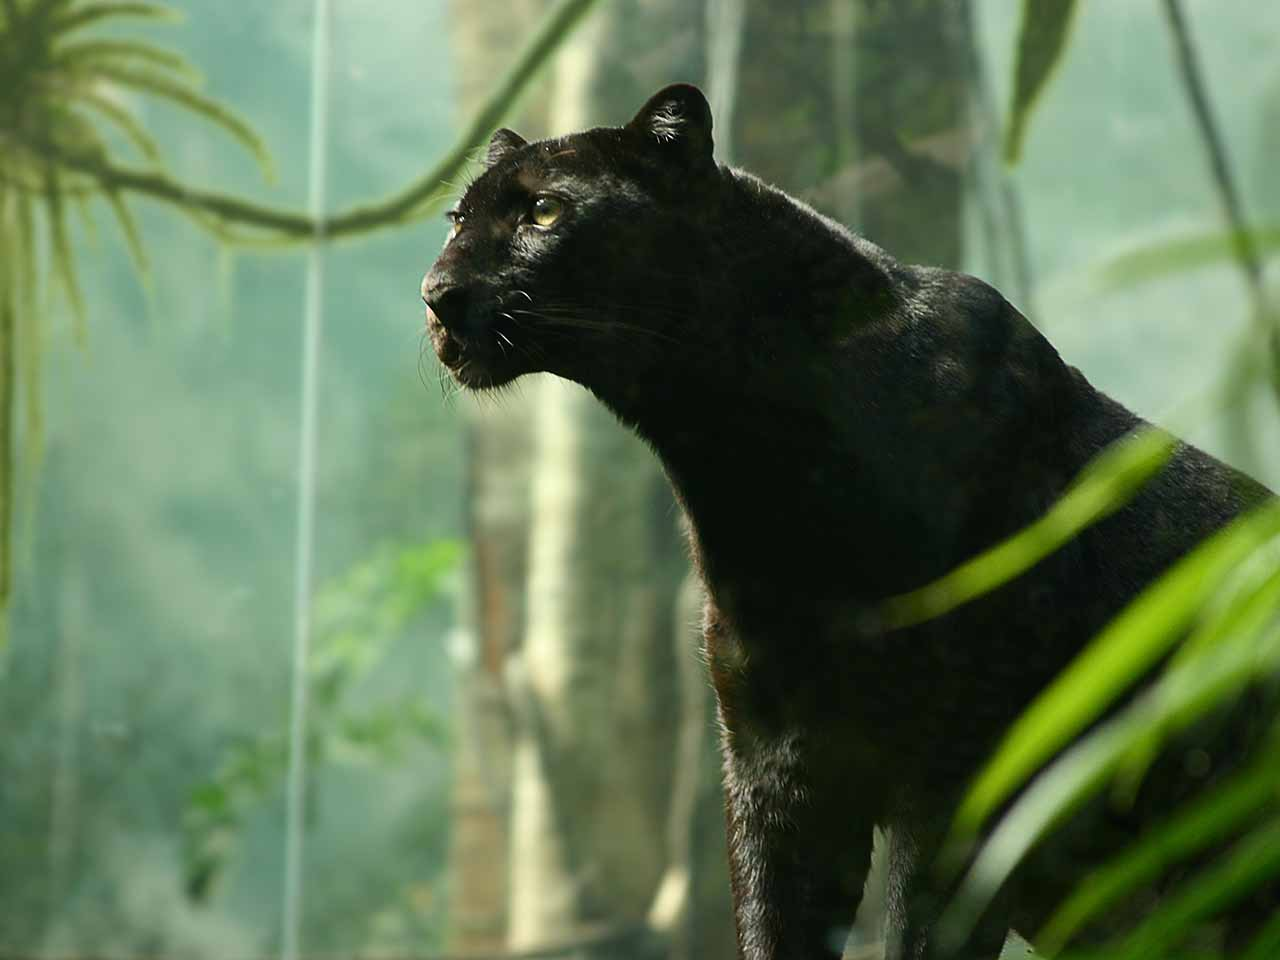 HD Wallpapers Pics Black Panther HD Wallpapers 1280x960